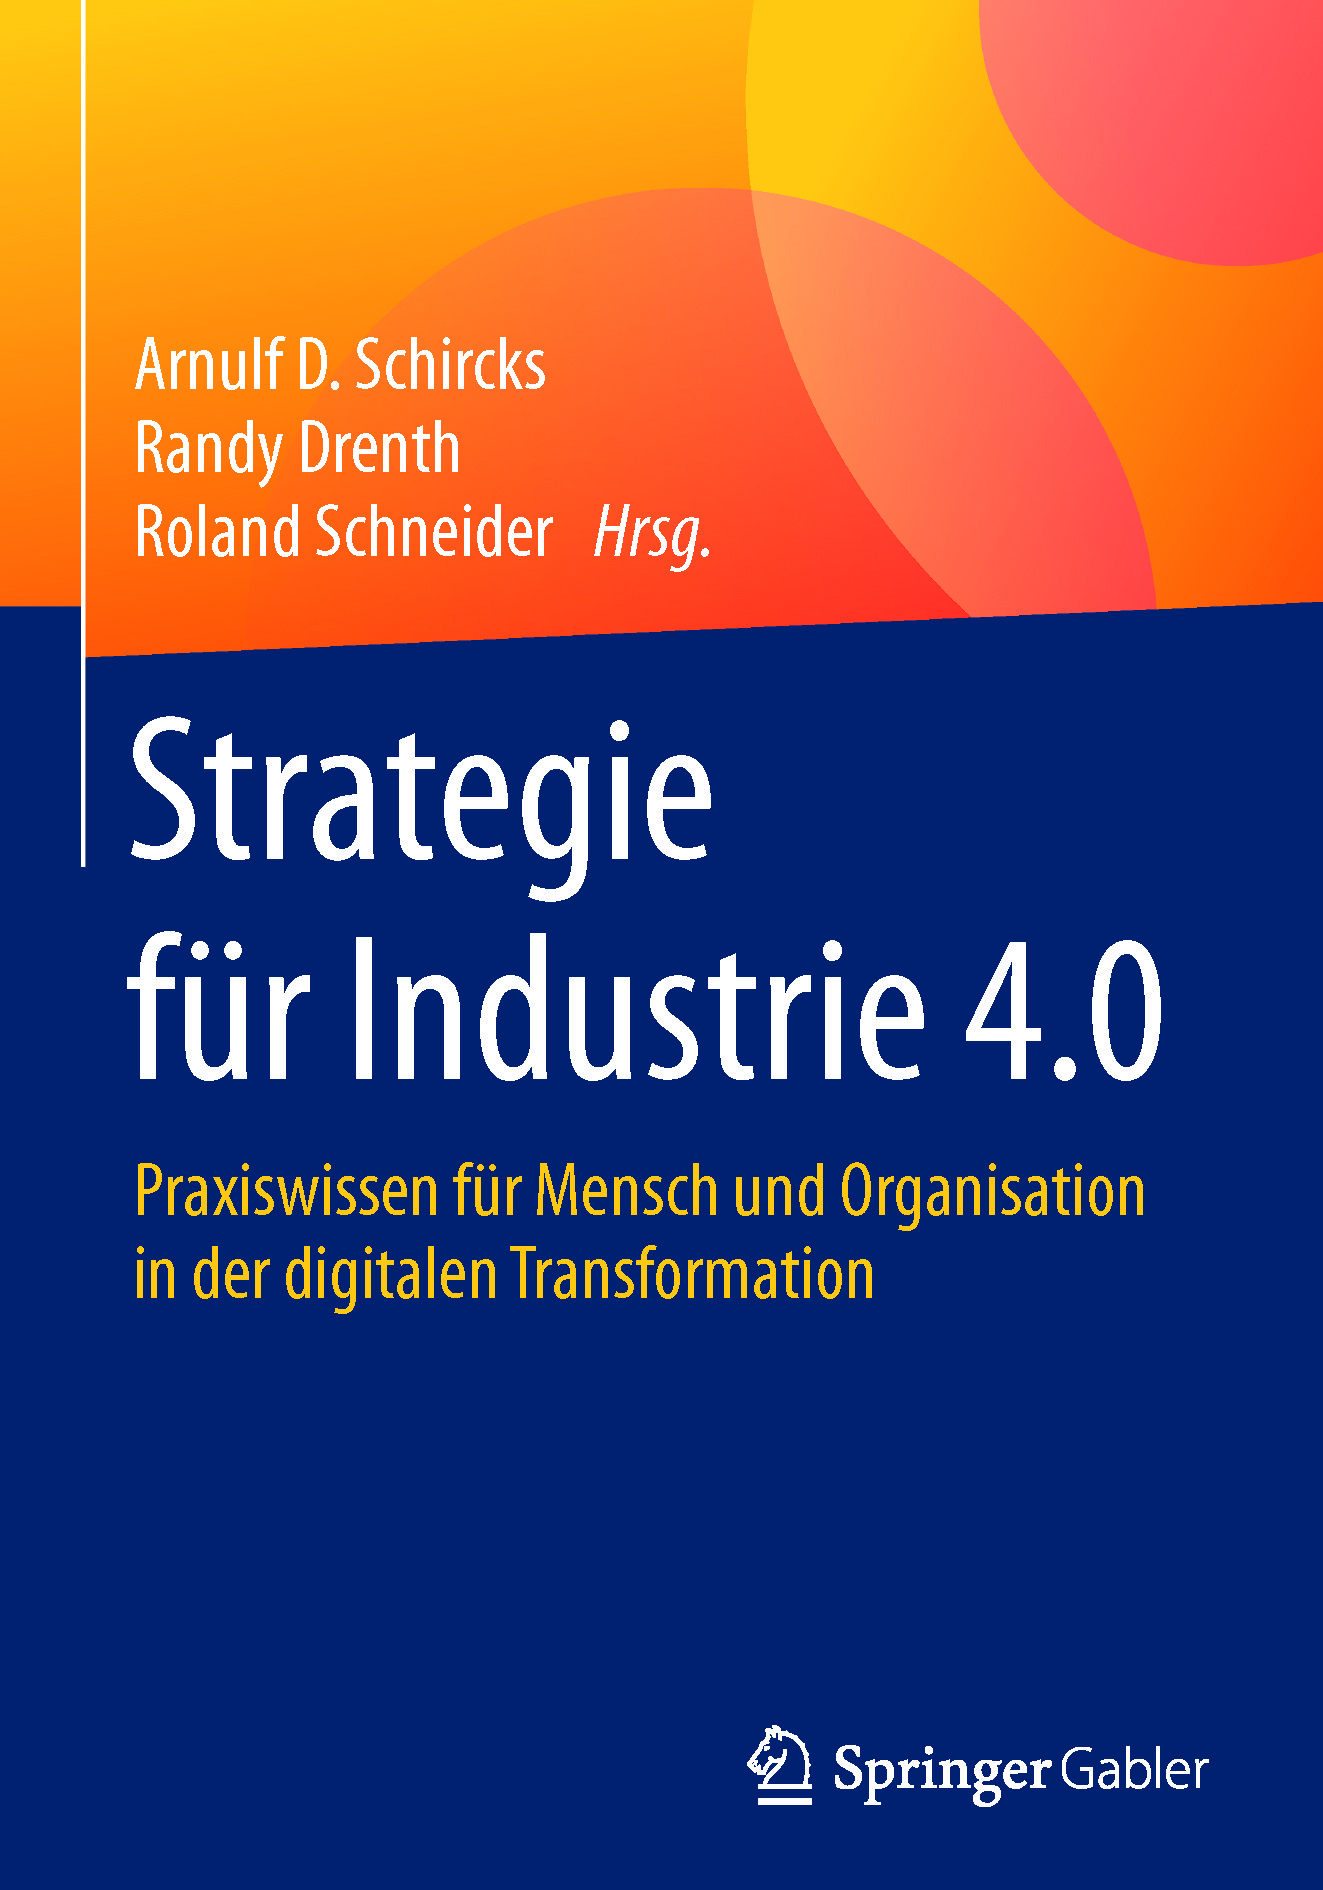 Drenth, Randy - Strategie für Industrie 4.0, ebook